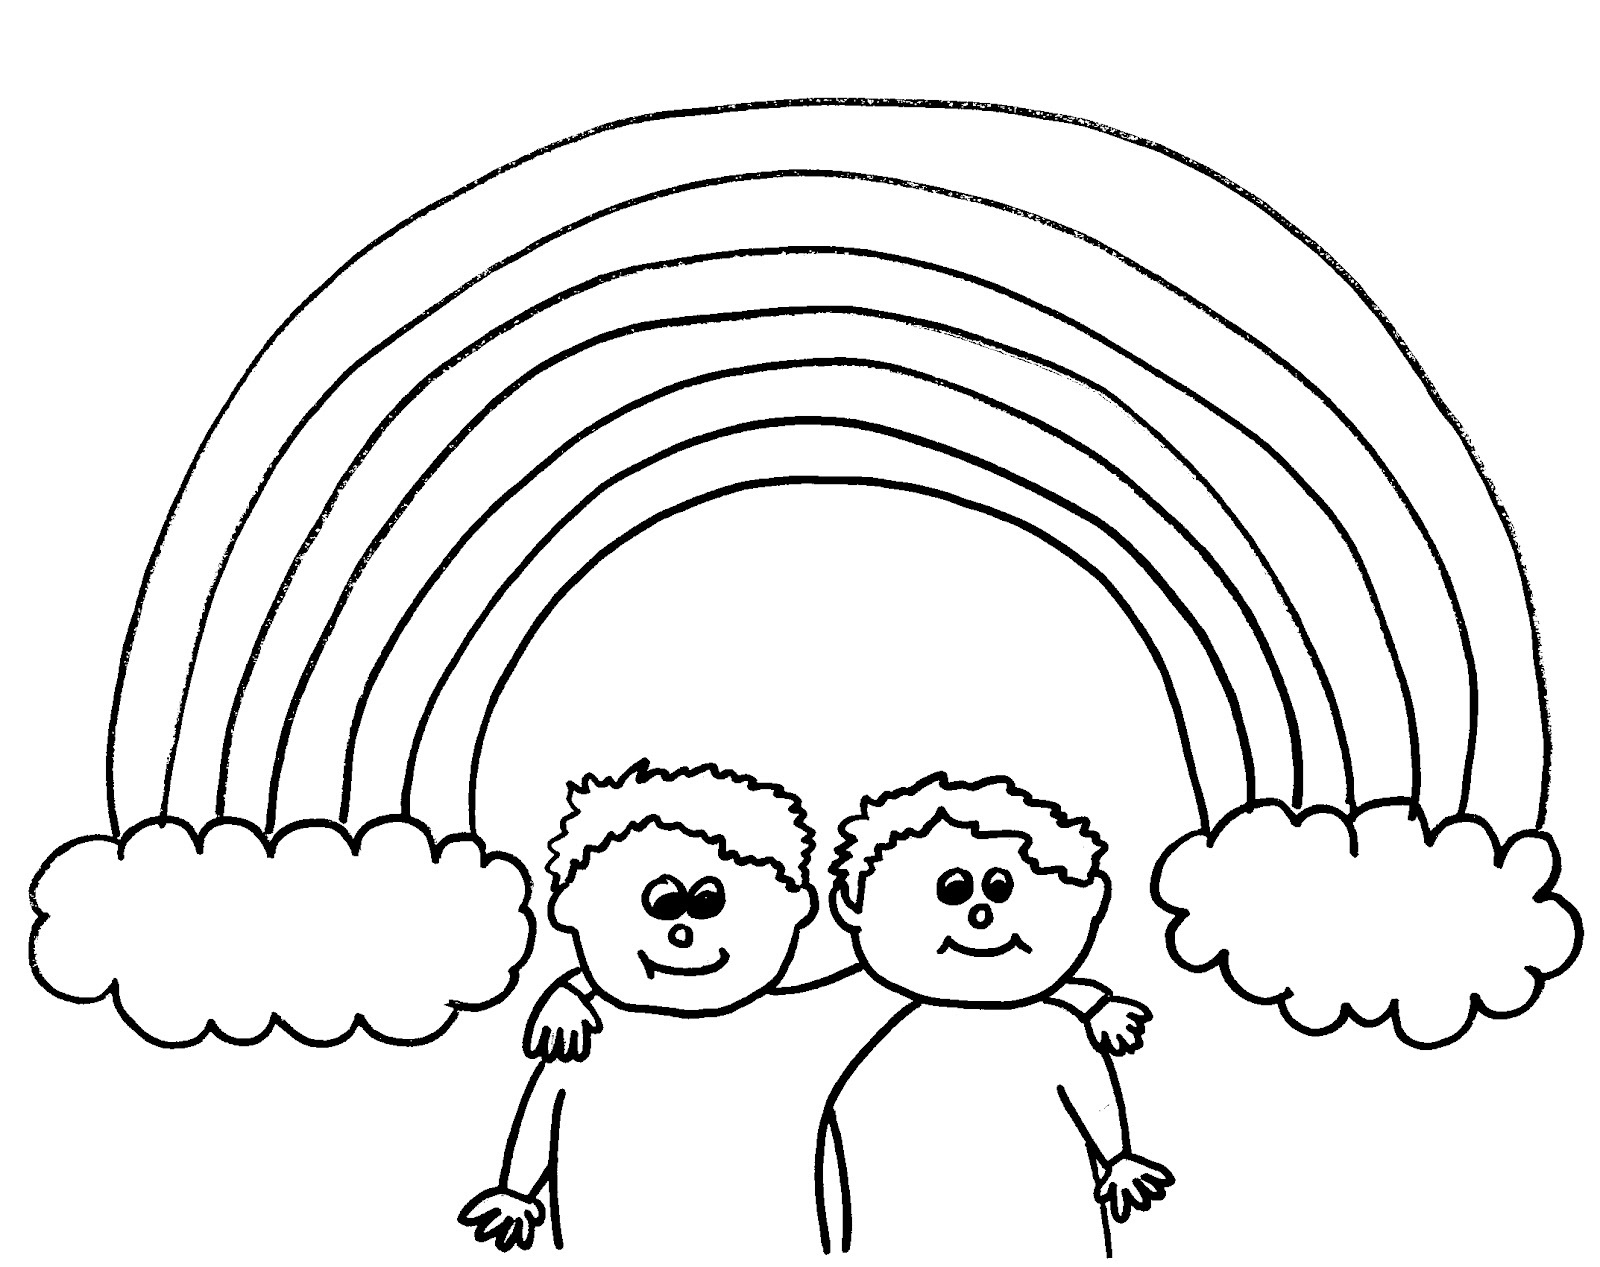 rainbows coloring pages - Rainbow Picture To Colour